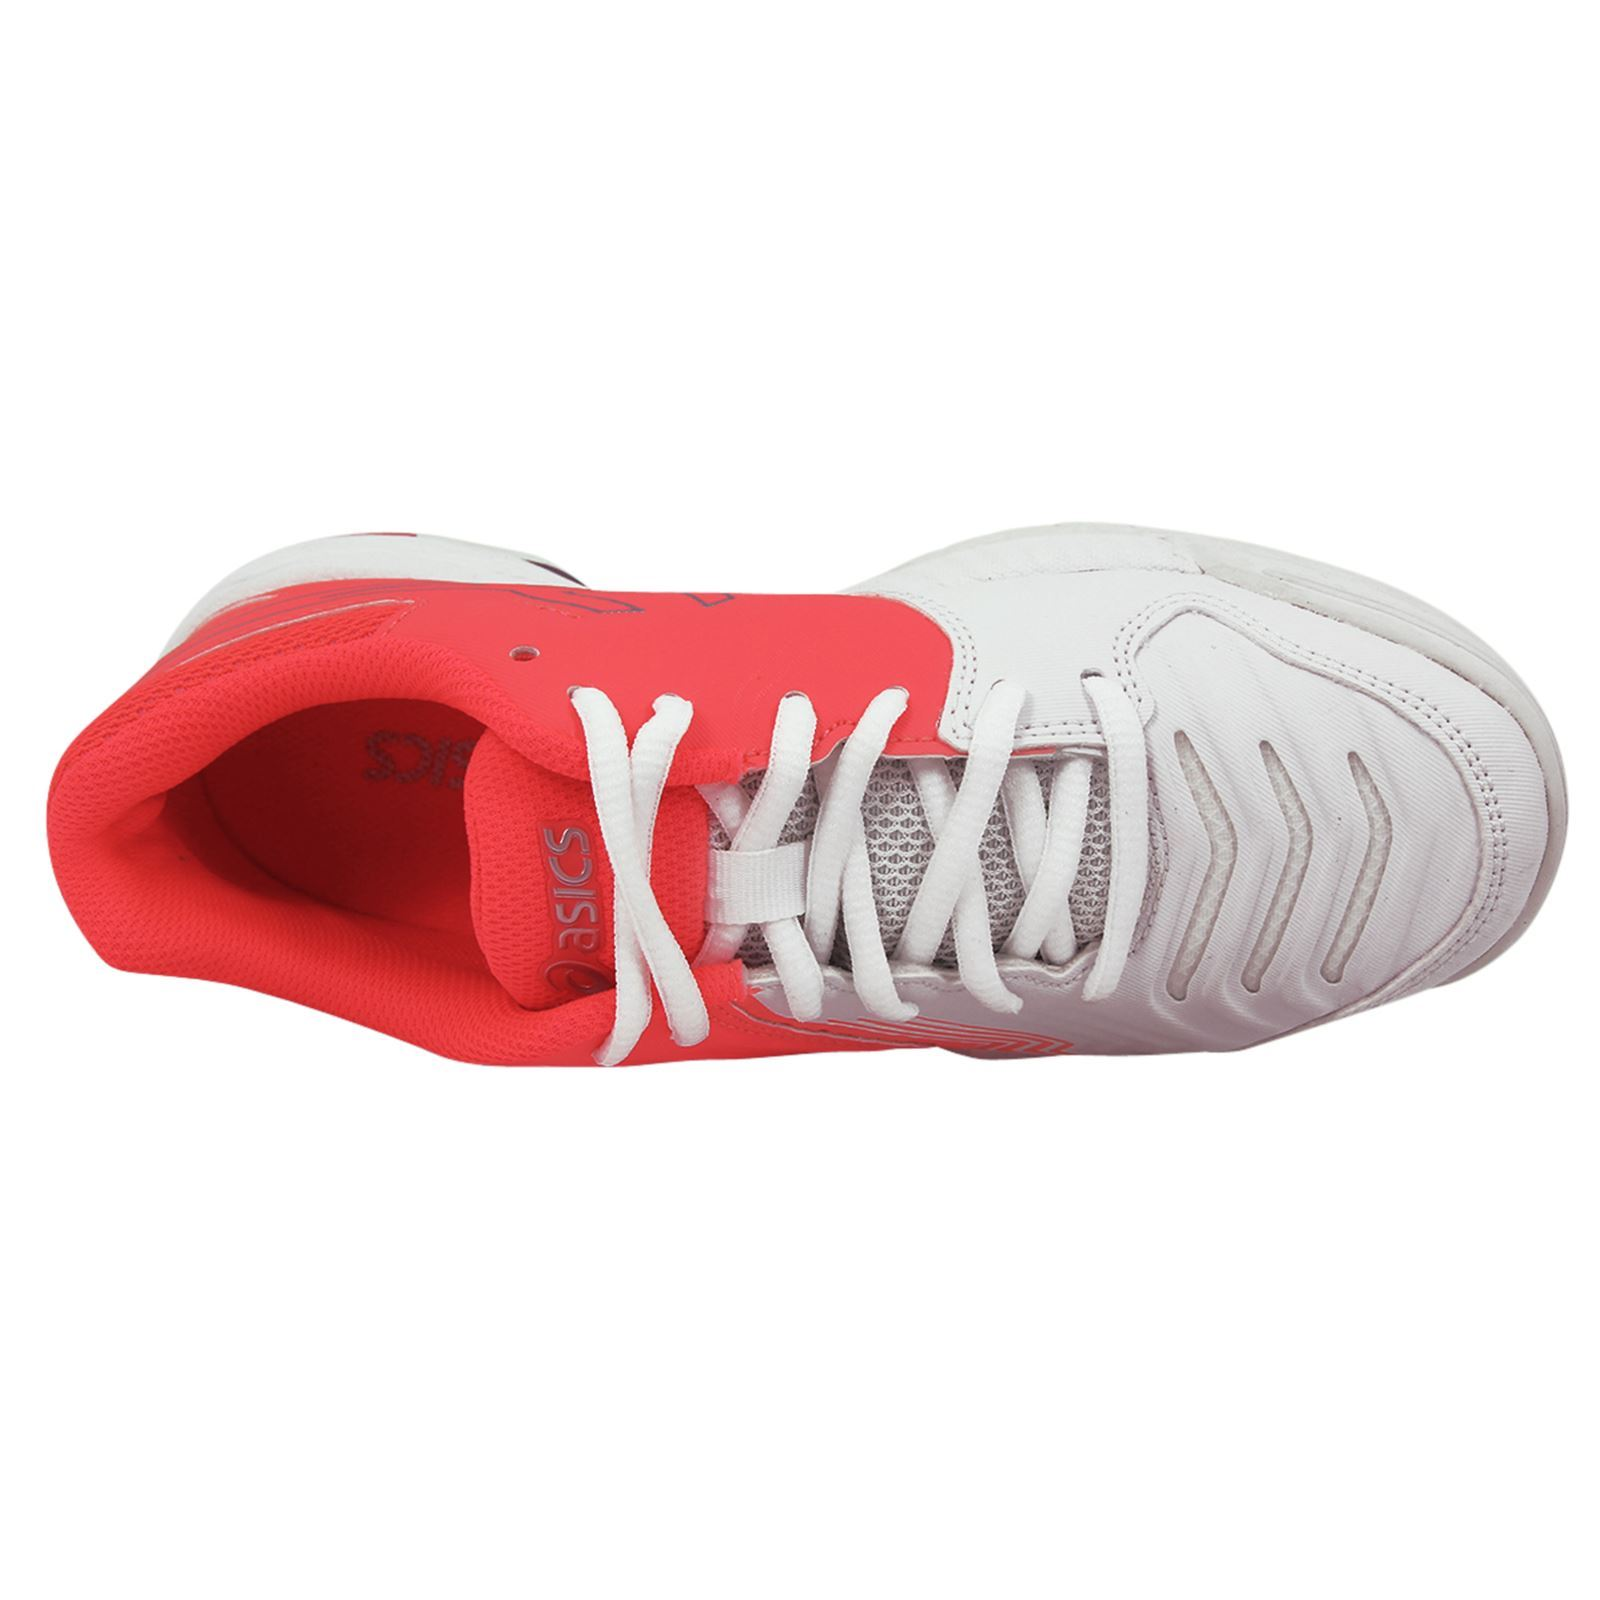 Gel Rose Chaussures De Tennis 6 Game qMVpzUS